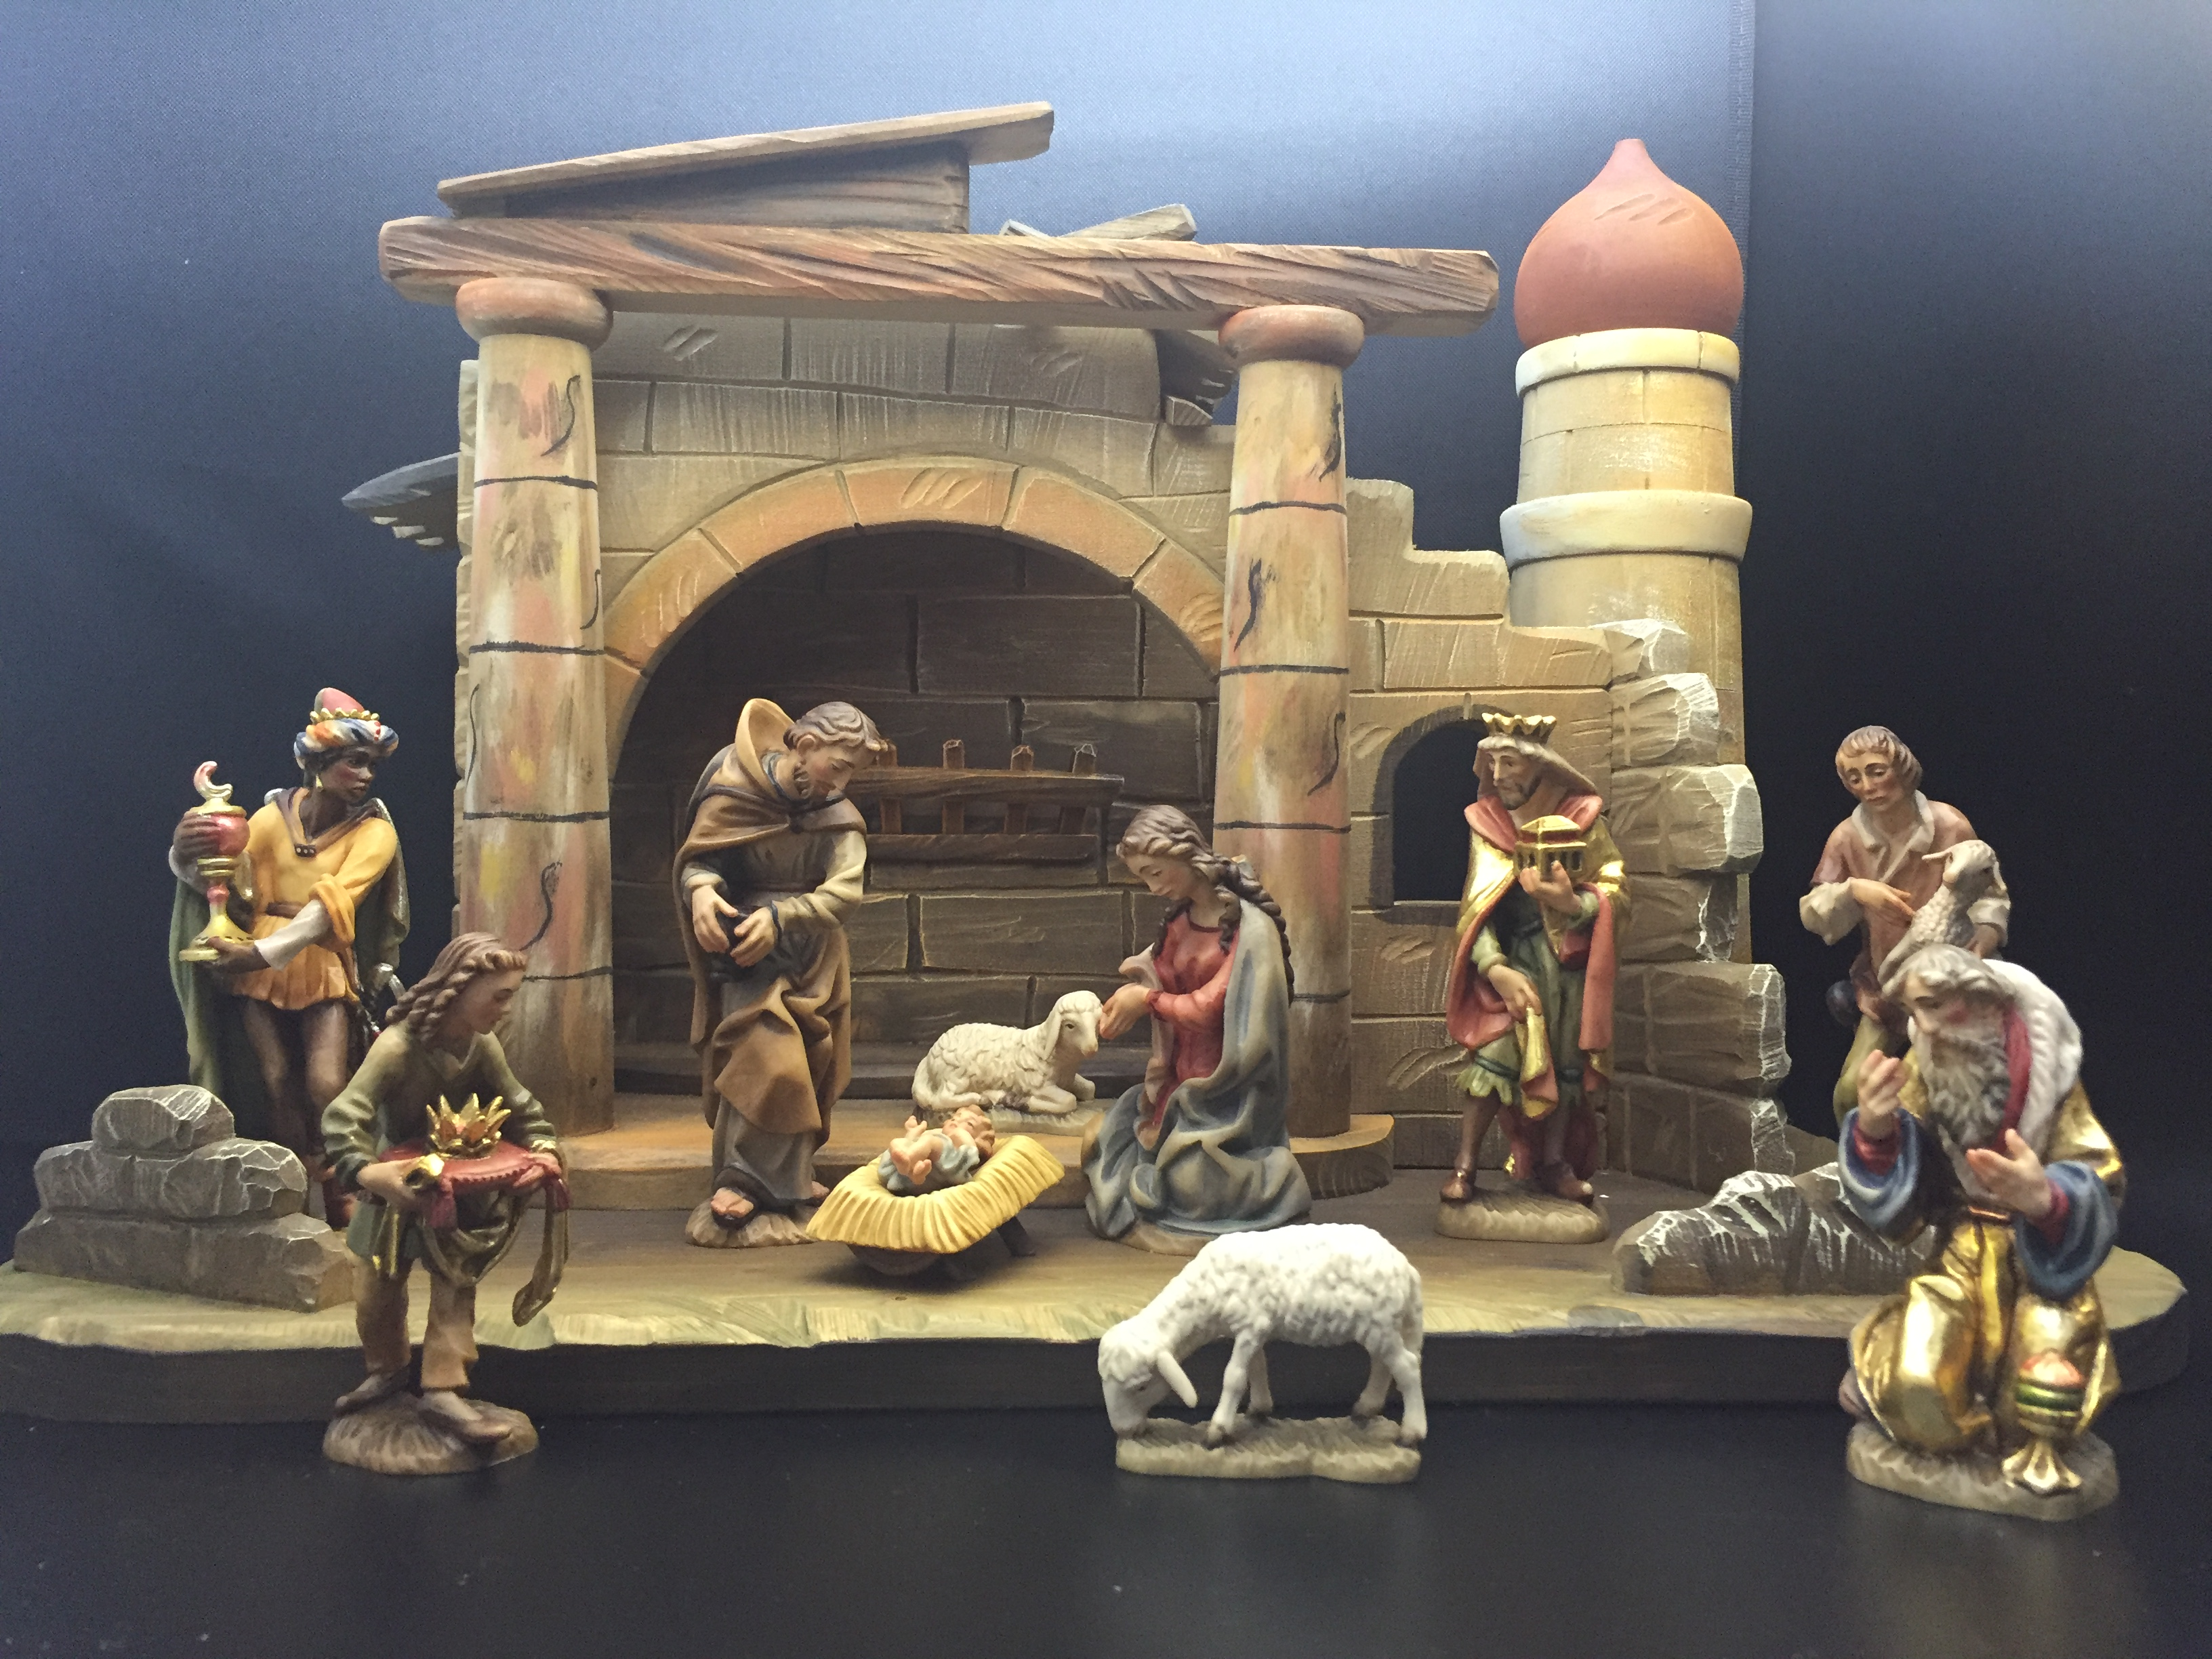 "Anri? Wood Carved Nativity 5"" 10pc Figures with Stable Anri® Wood Carved Nativity 5"" Figures with Stable, ANRI, wood, woodcarved, nativity, italy, creche, krippe,bacher,"